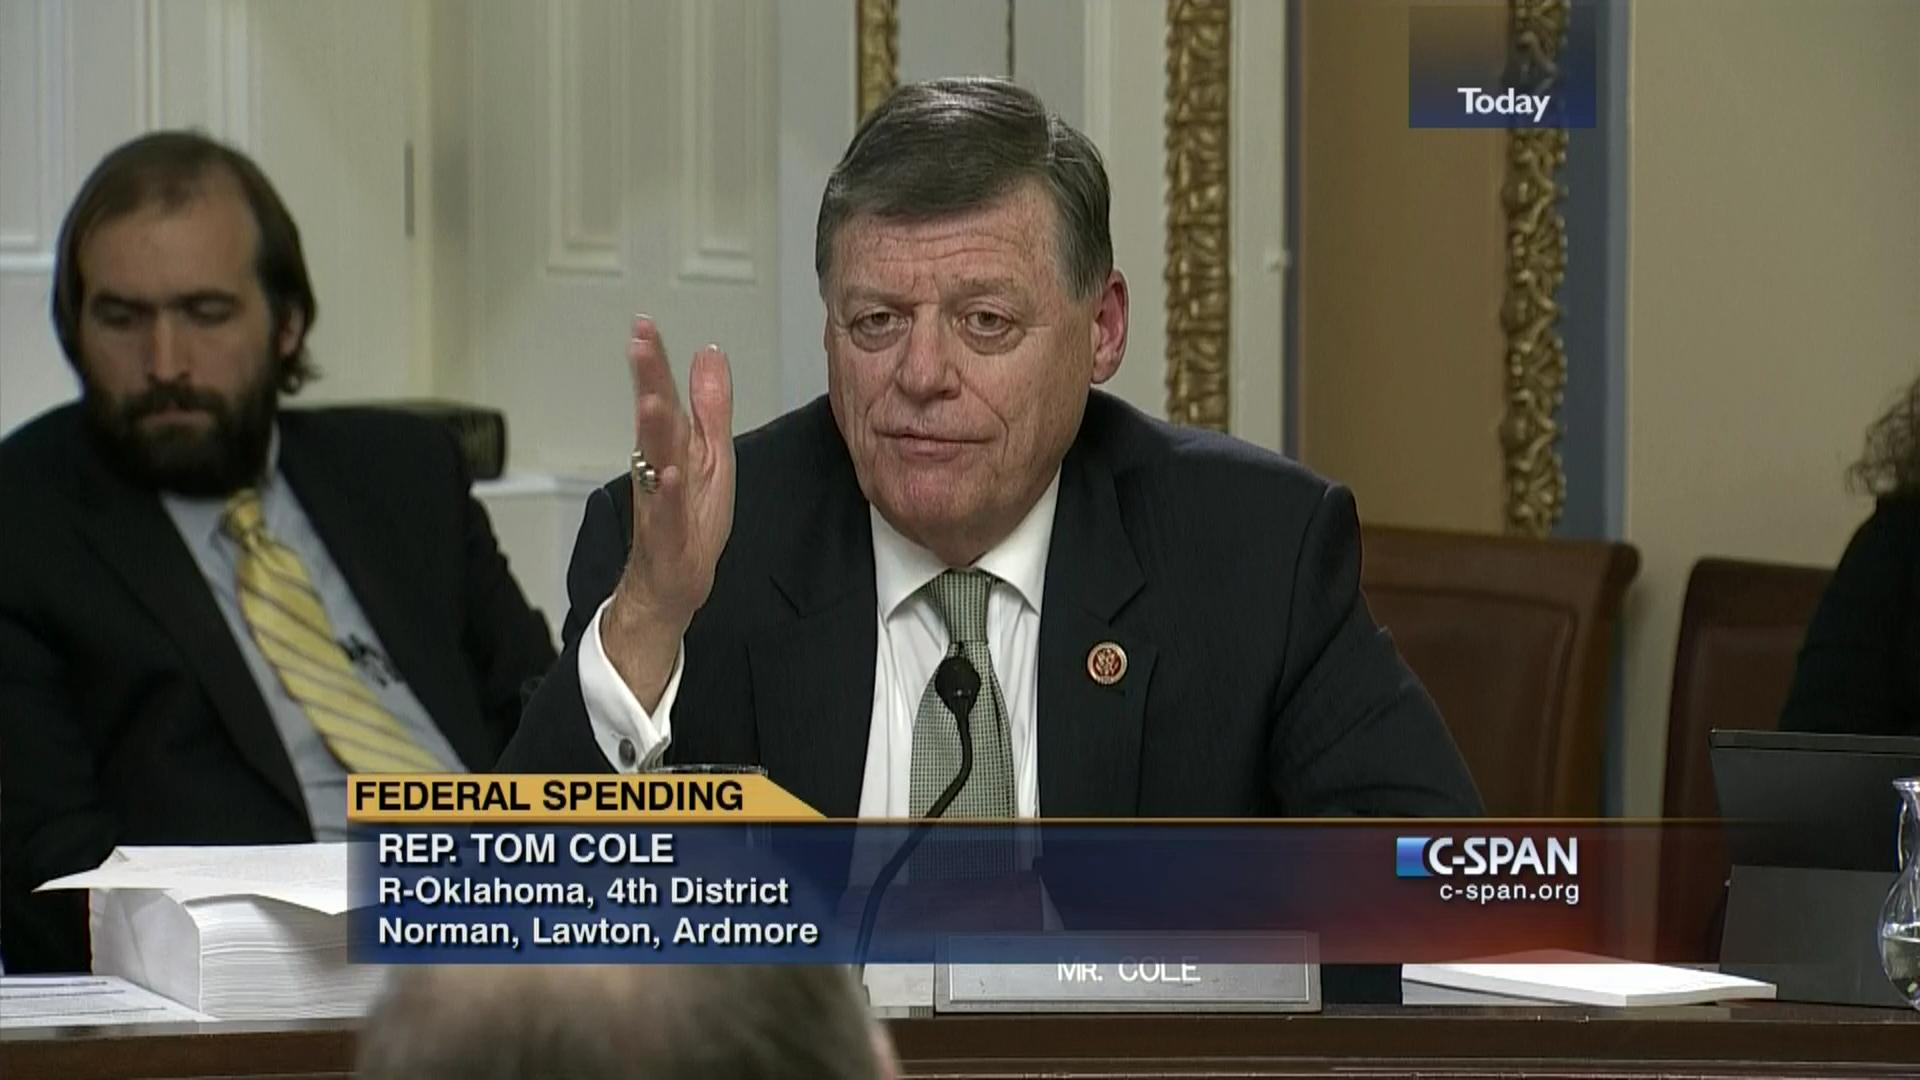 rep cole n sovereignty user clip c span org